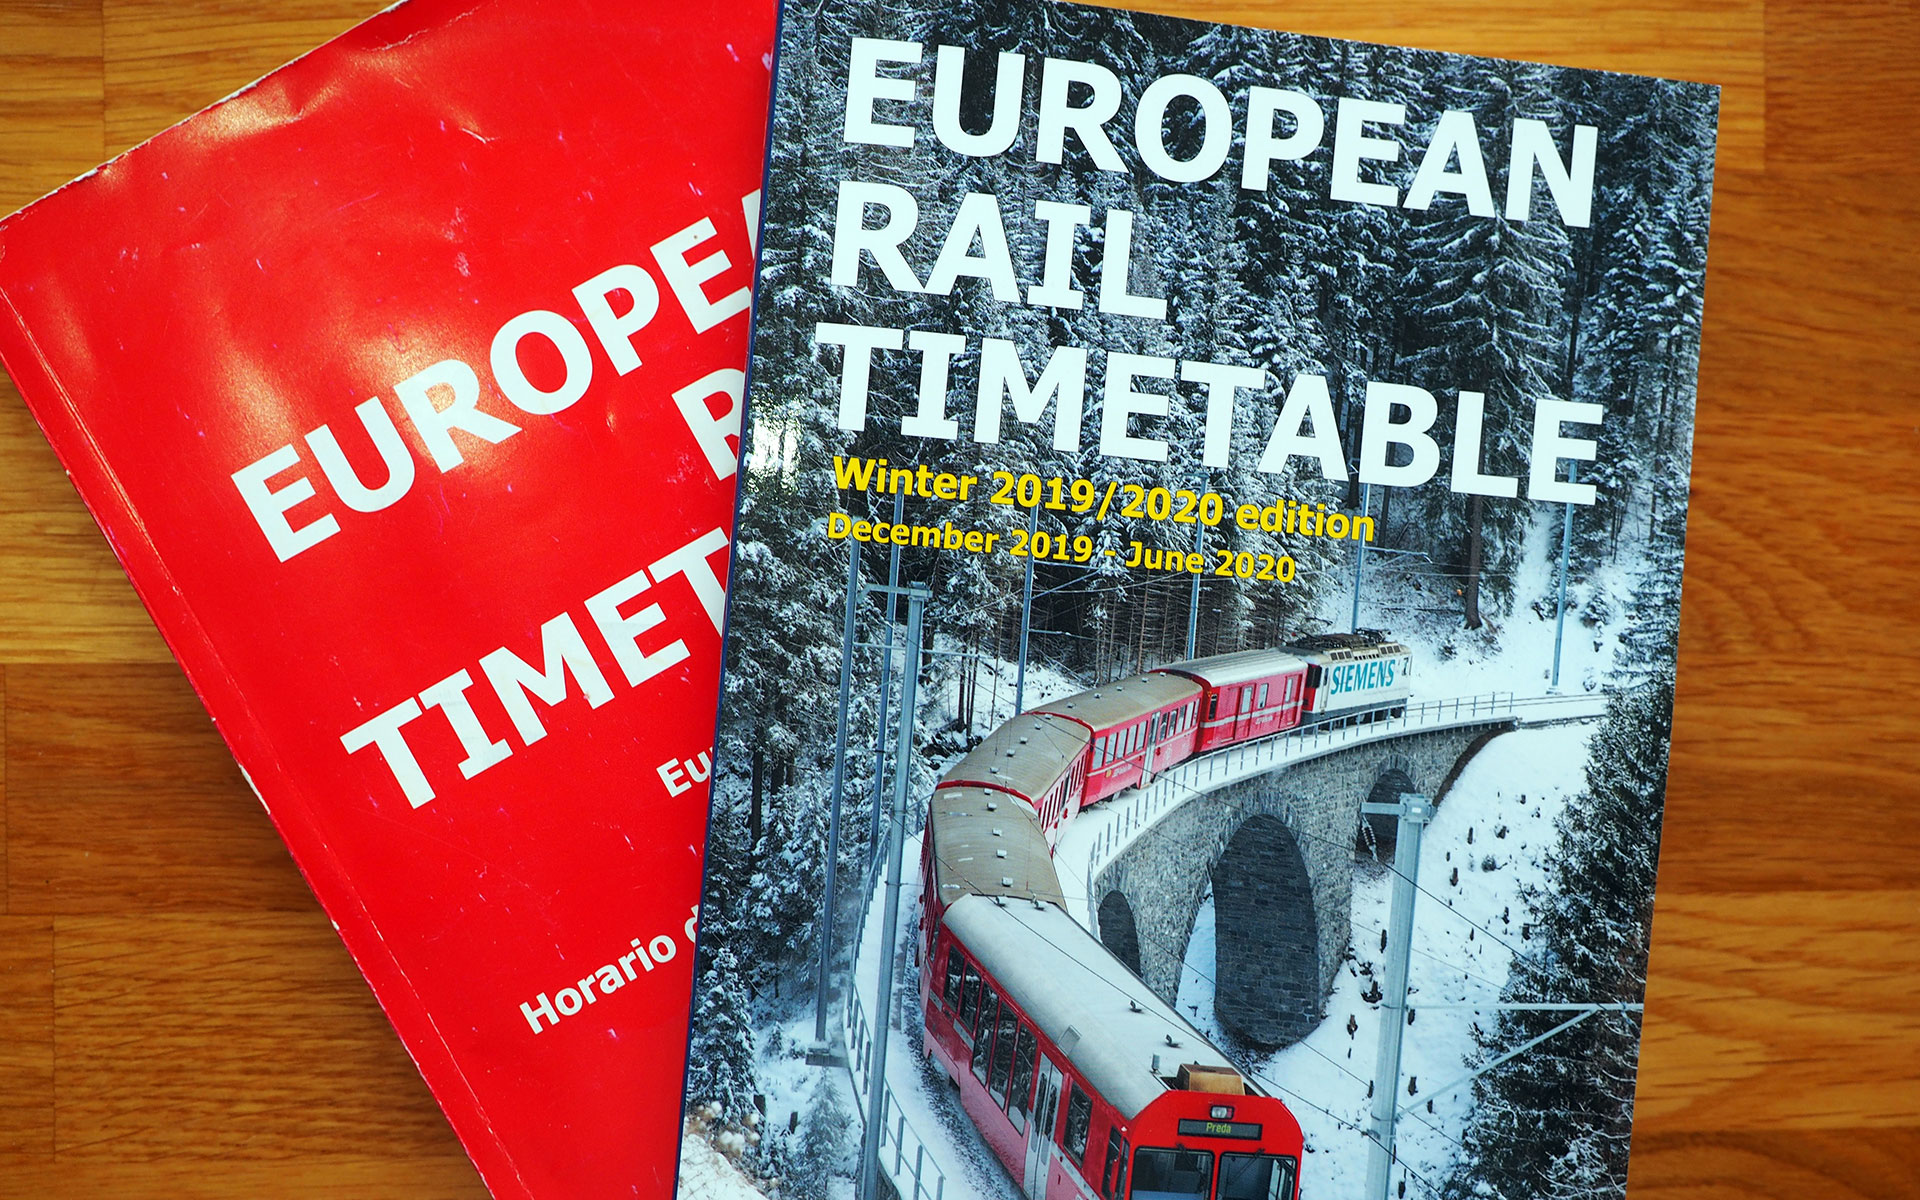 The winter 2019/2020 edition of the European Rail Timetable includes a number of tributes to Brendan Fox